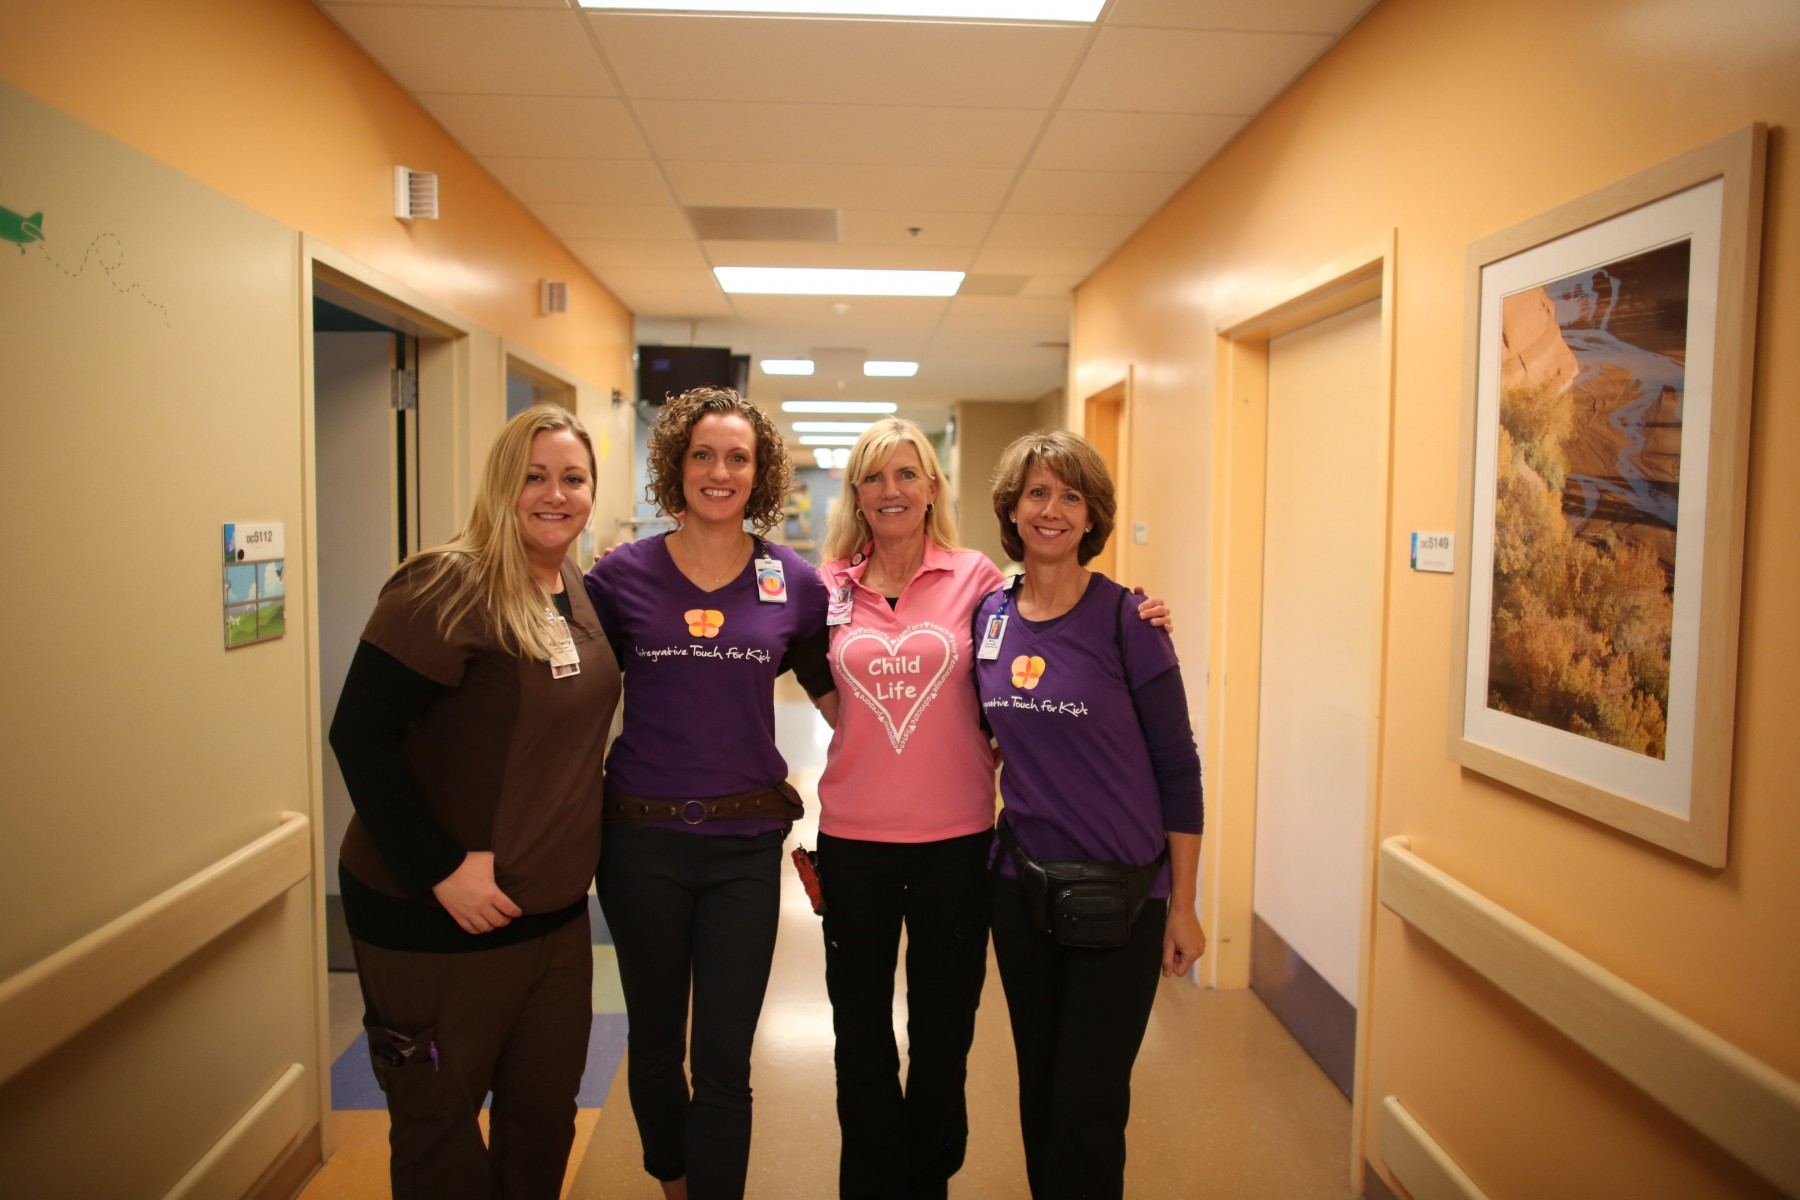 Caregivers gather together